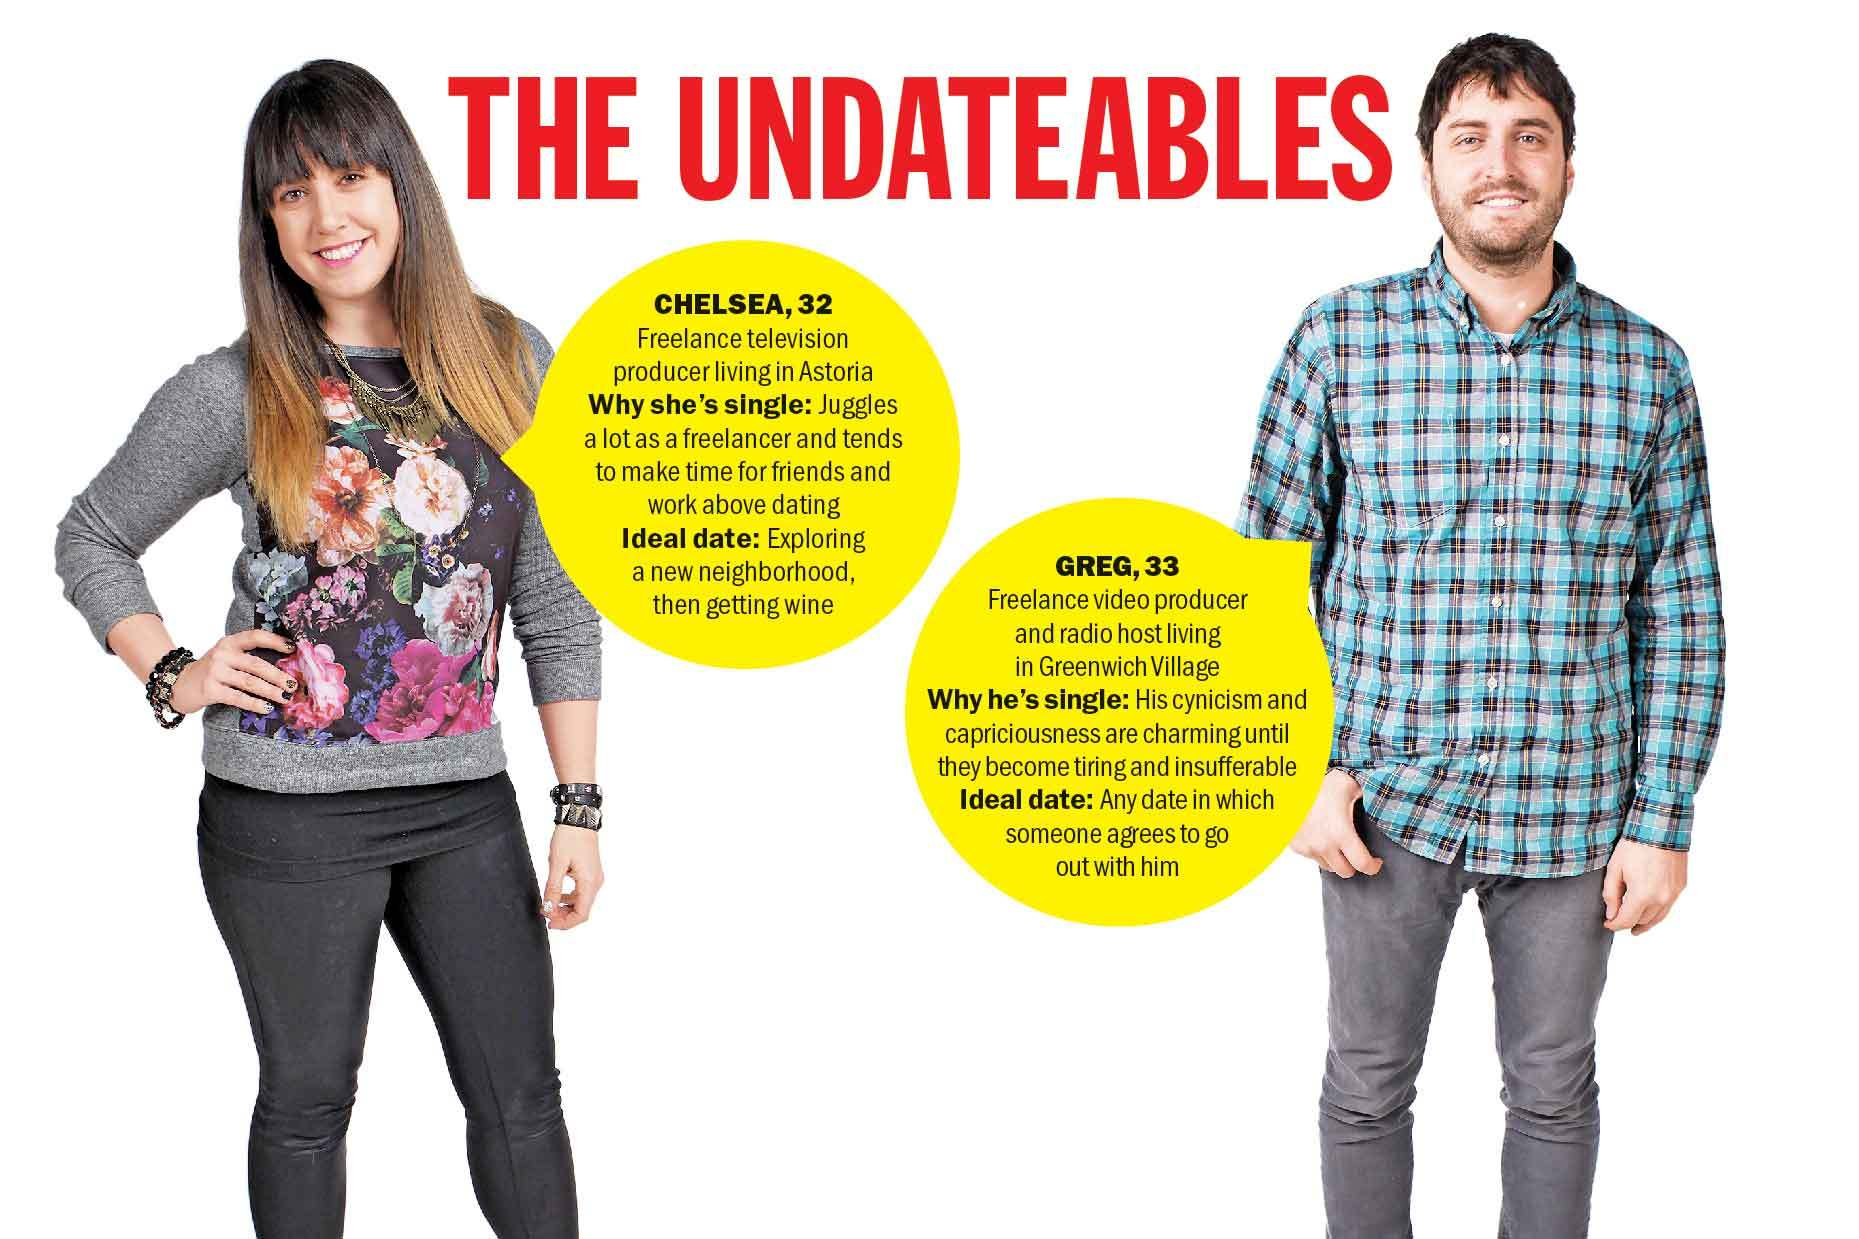 Meet the Undateables: Chelsea and Greg